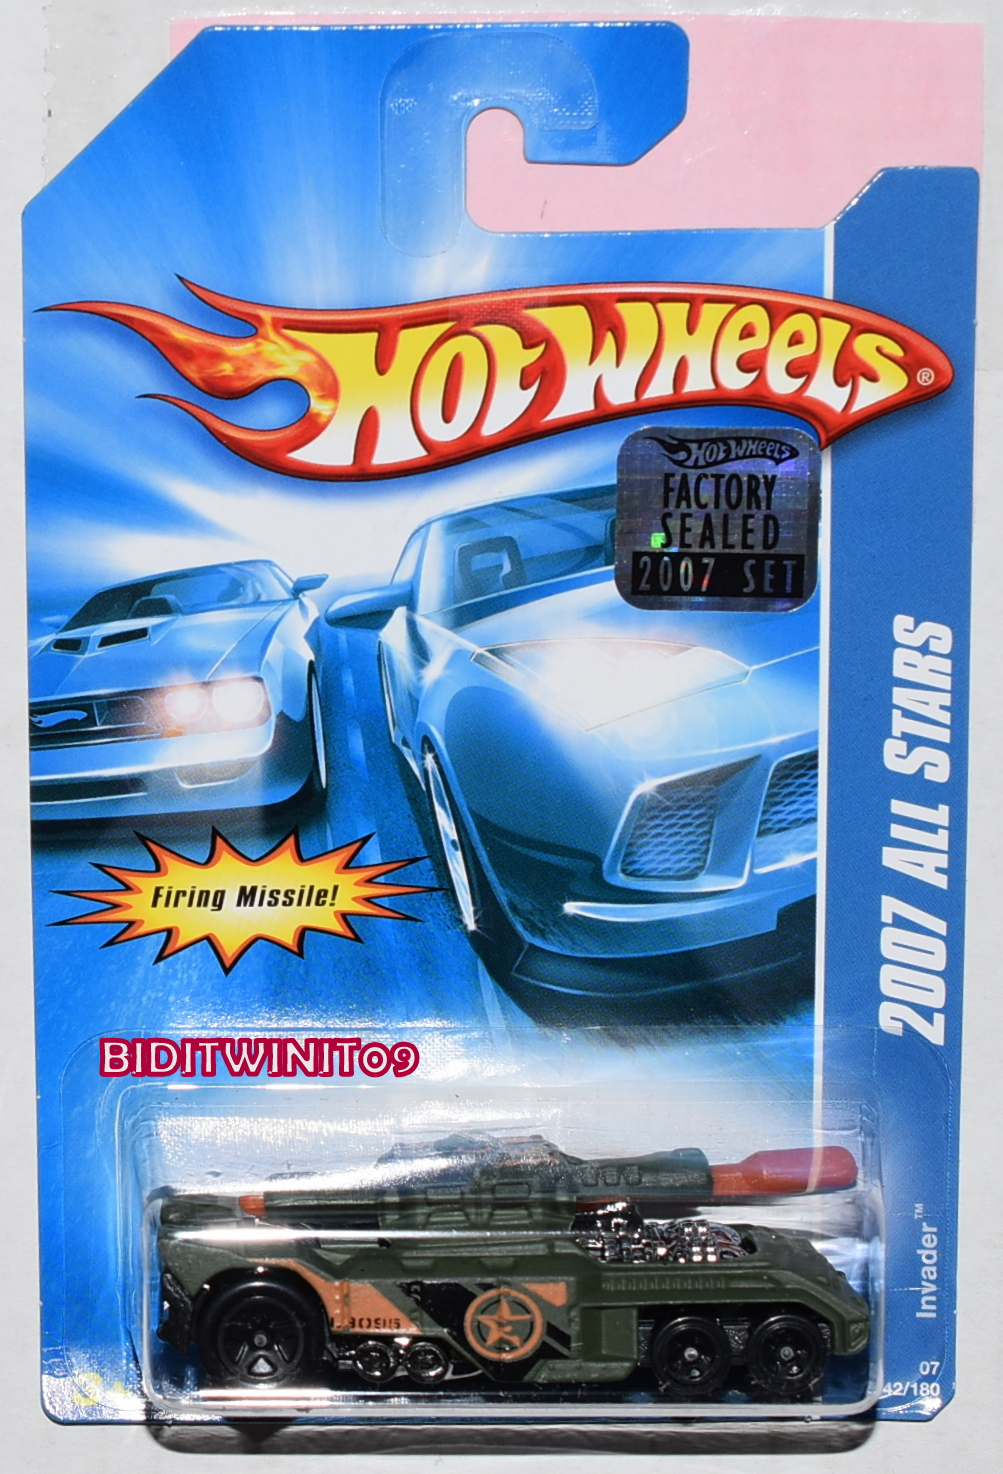 HOT WHEELS 2007 ALL STARS INVADER #142/180 DARK GREEN FACTORY SEALED